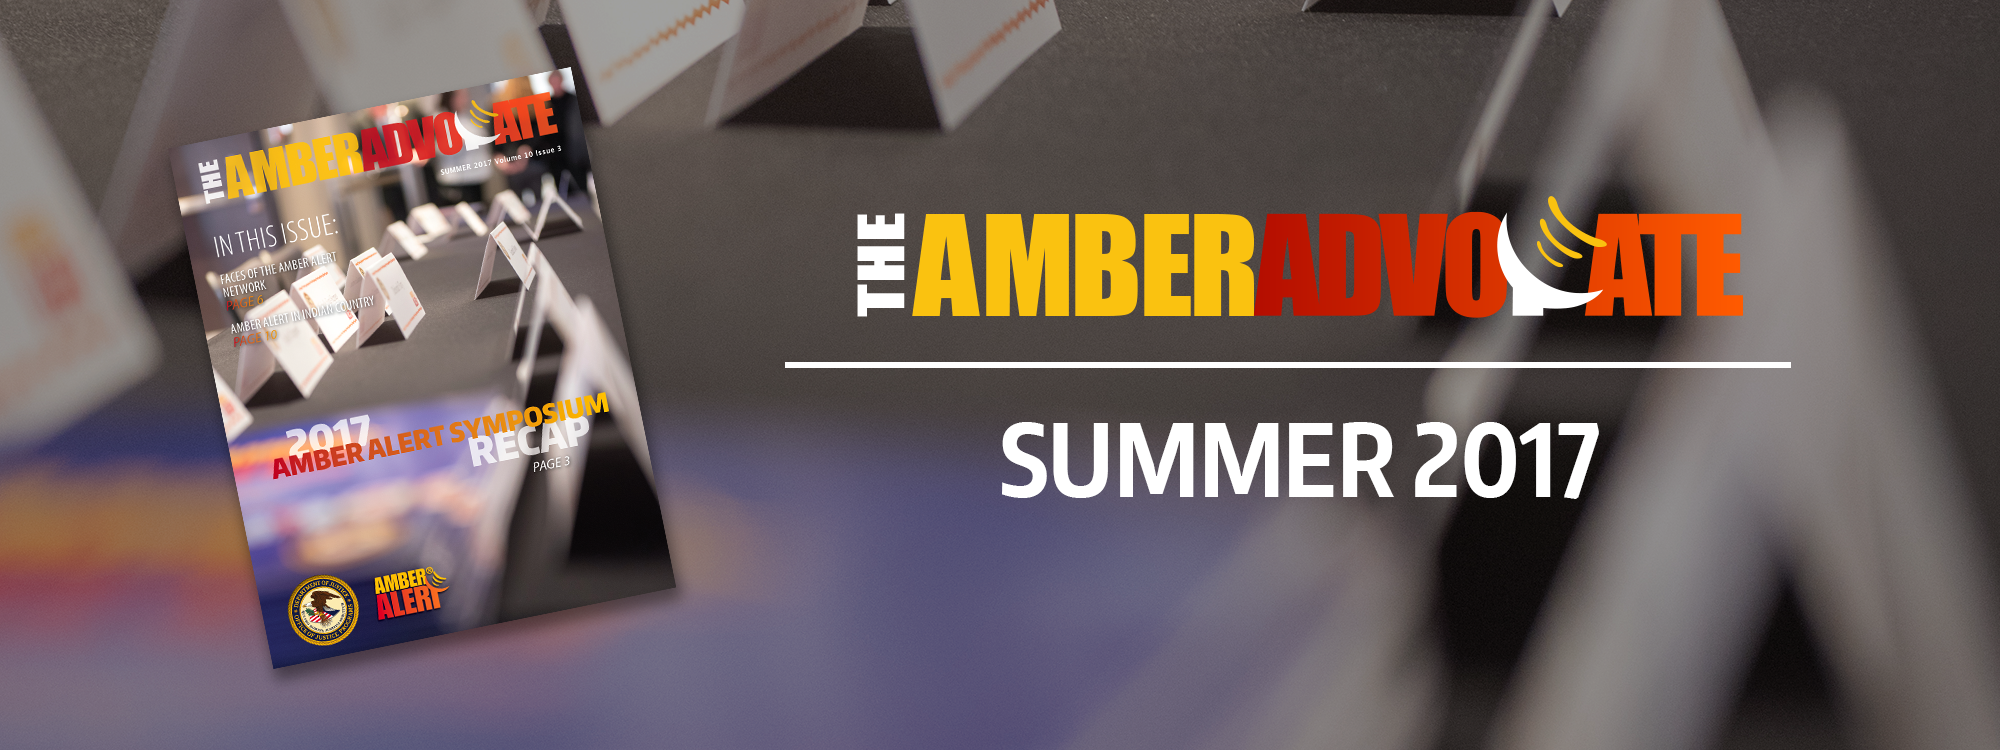 The AMBER Advocate Summer 2017 header